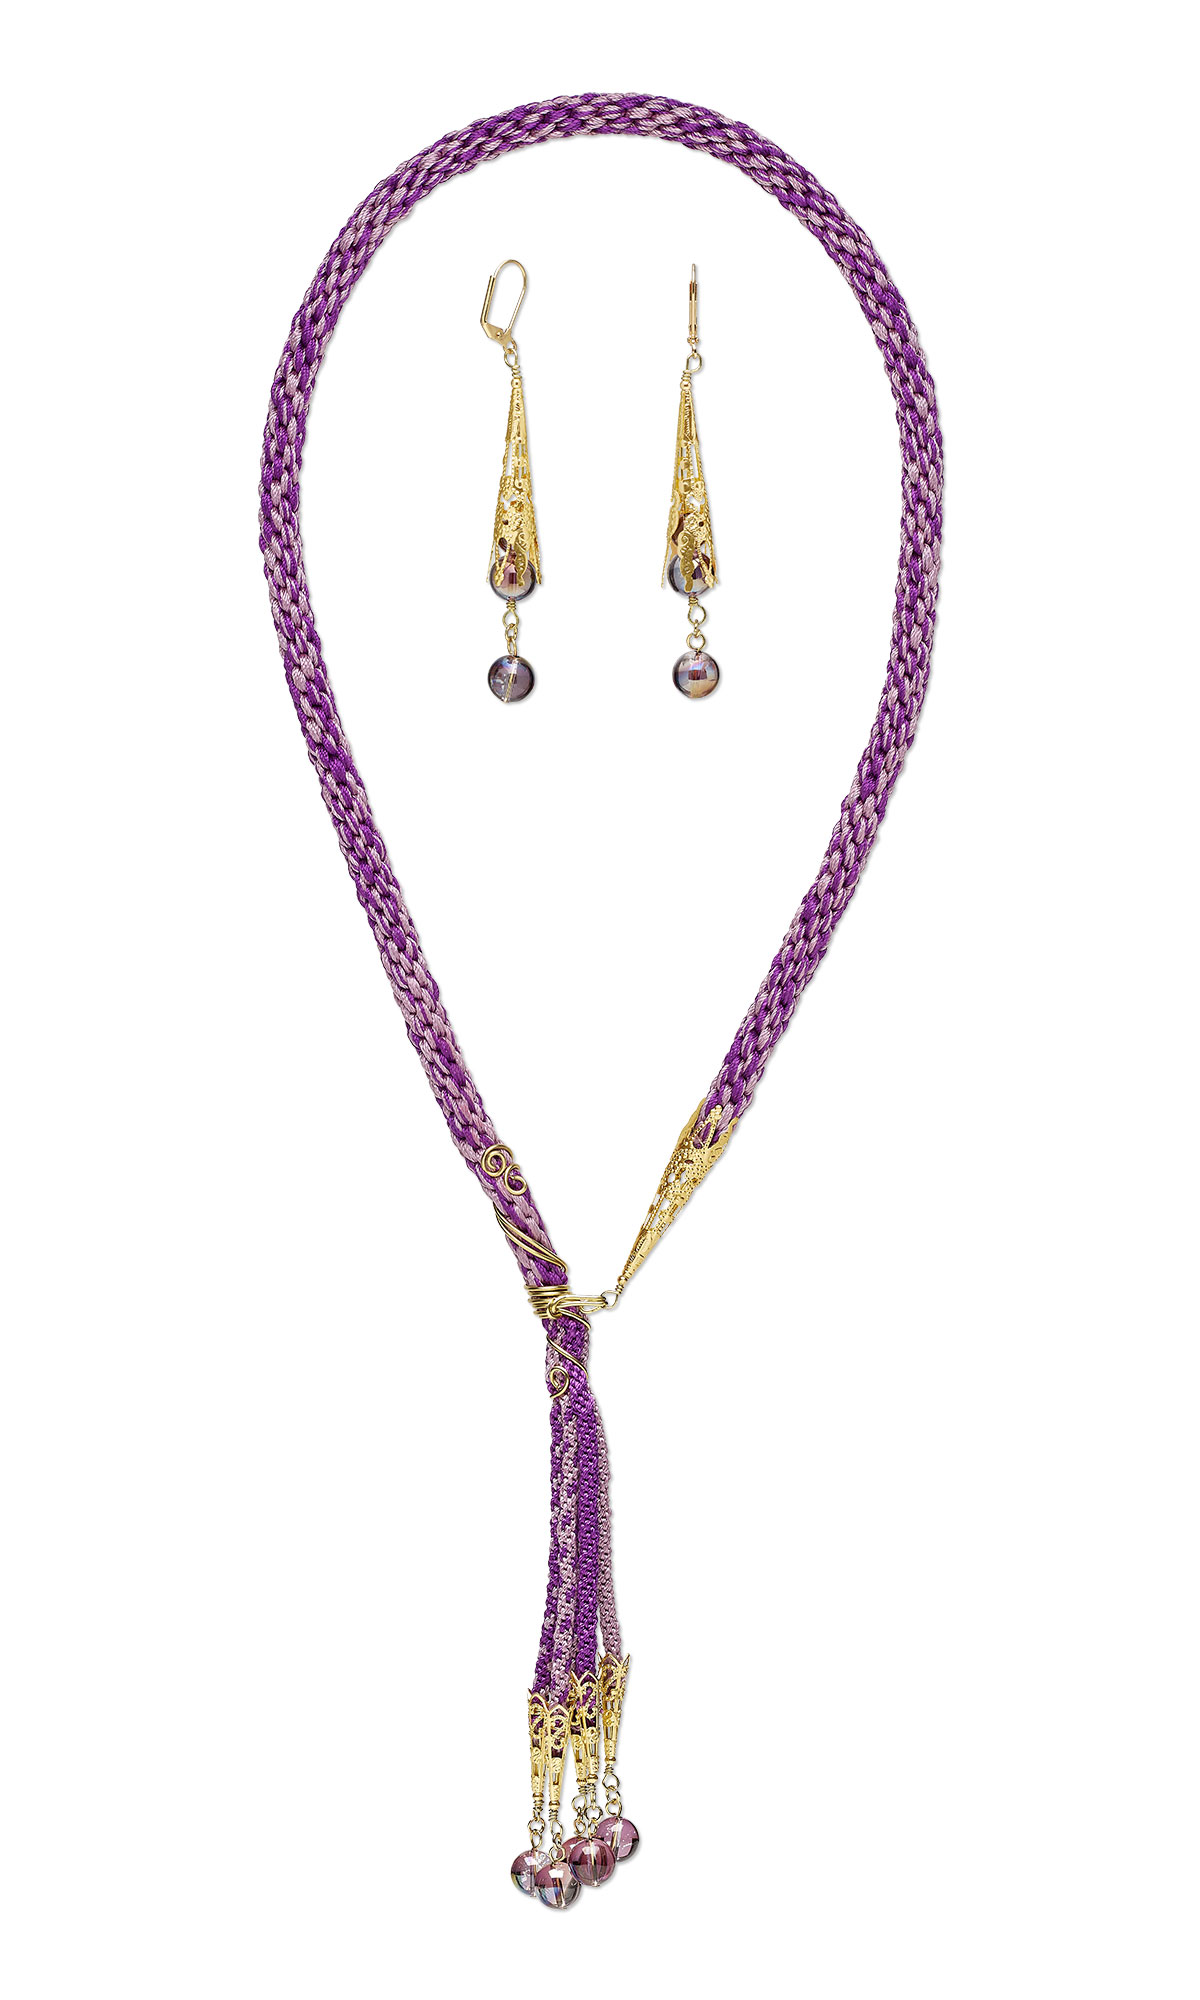 Jewelry Design - Lariat-Style Necklace and Earring Set with Kumihimo ...